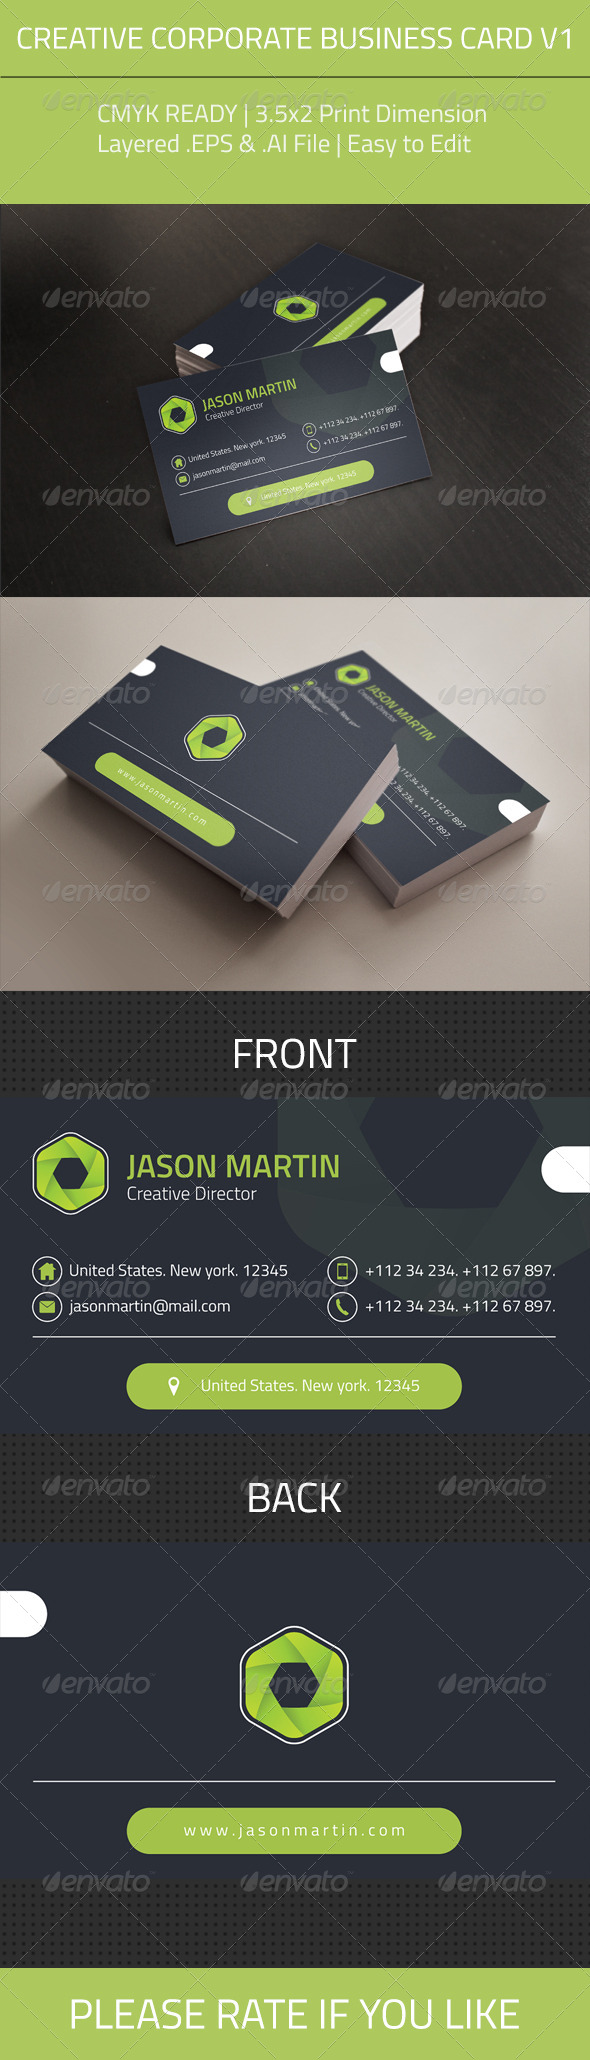 GraphicRiver Creative Corporate Business Card V1 8269006